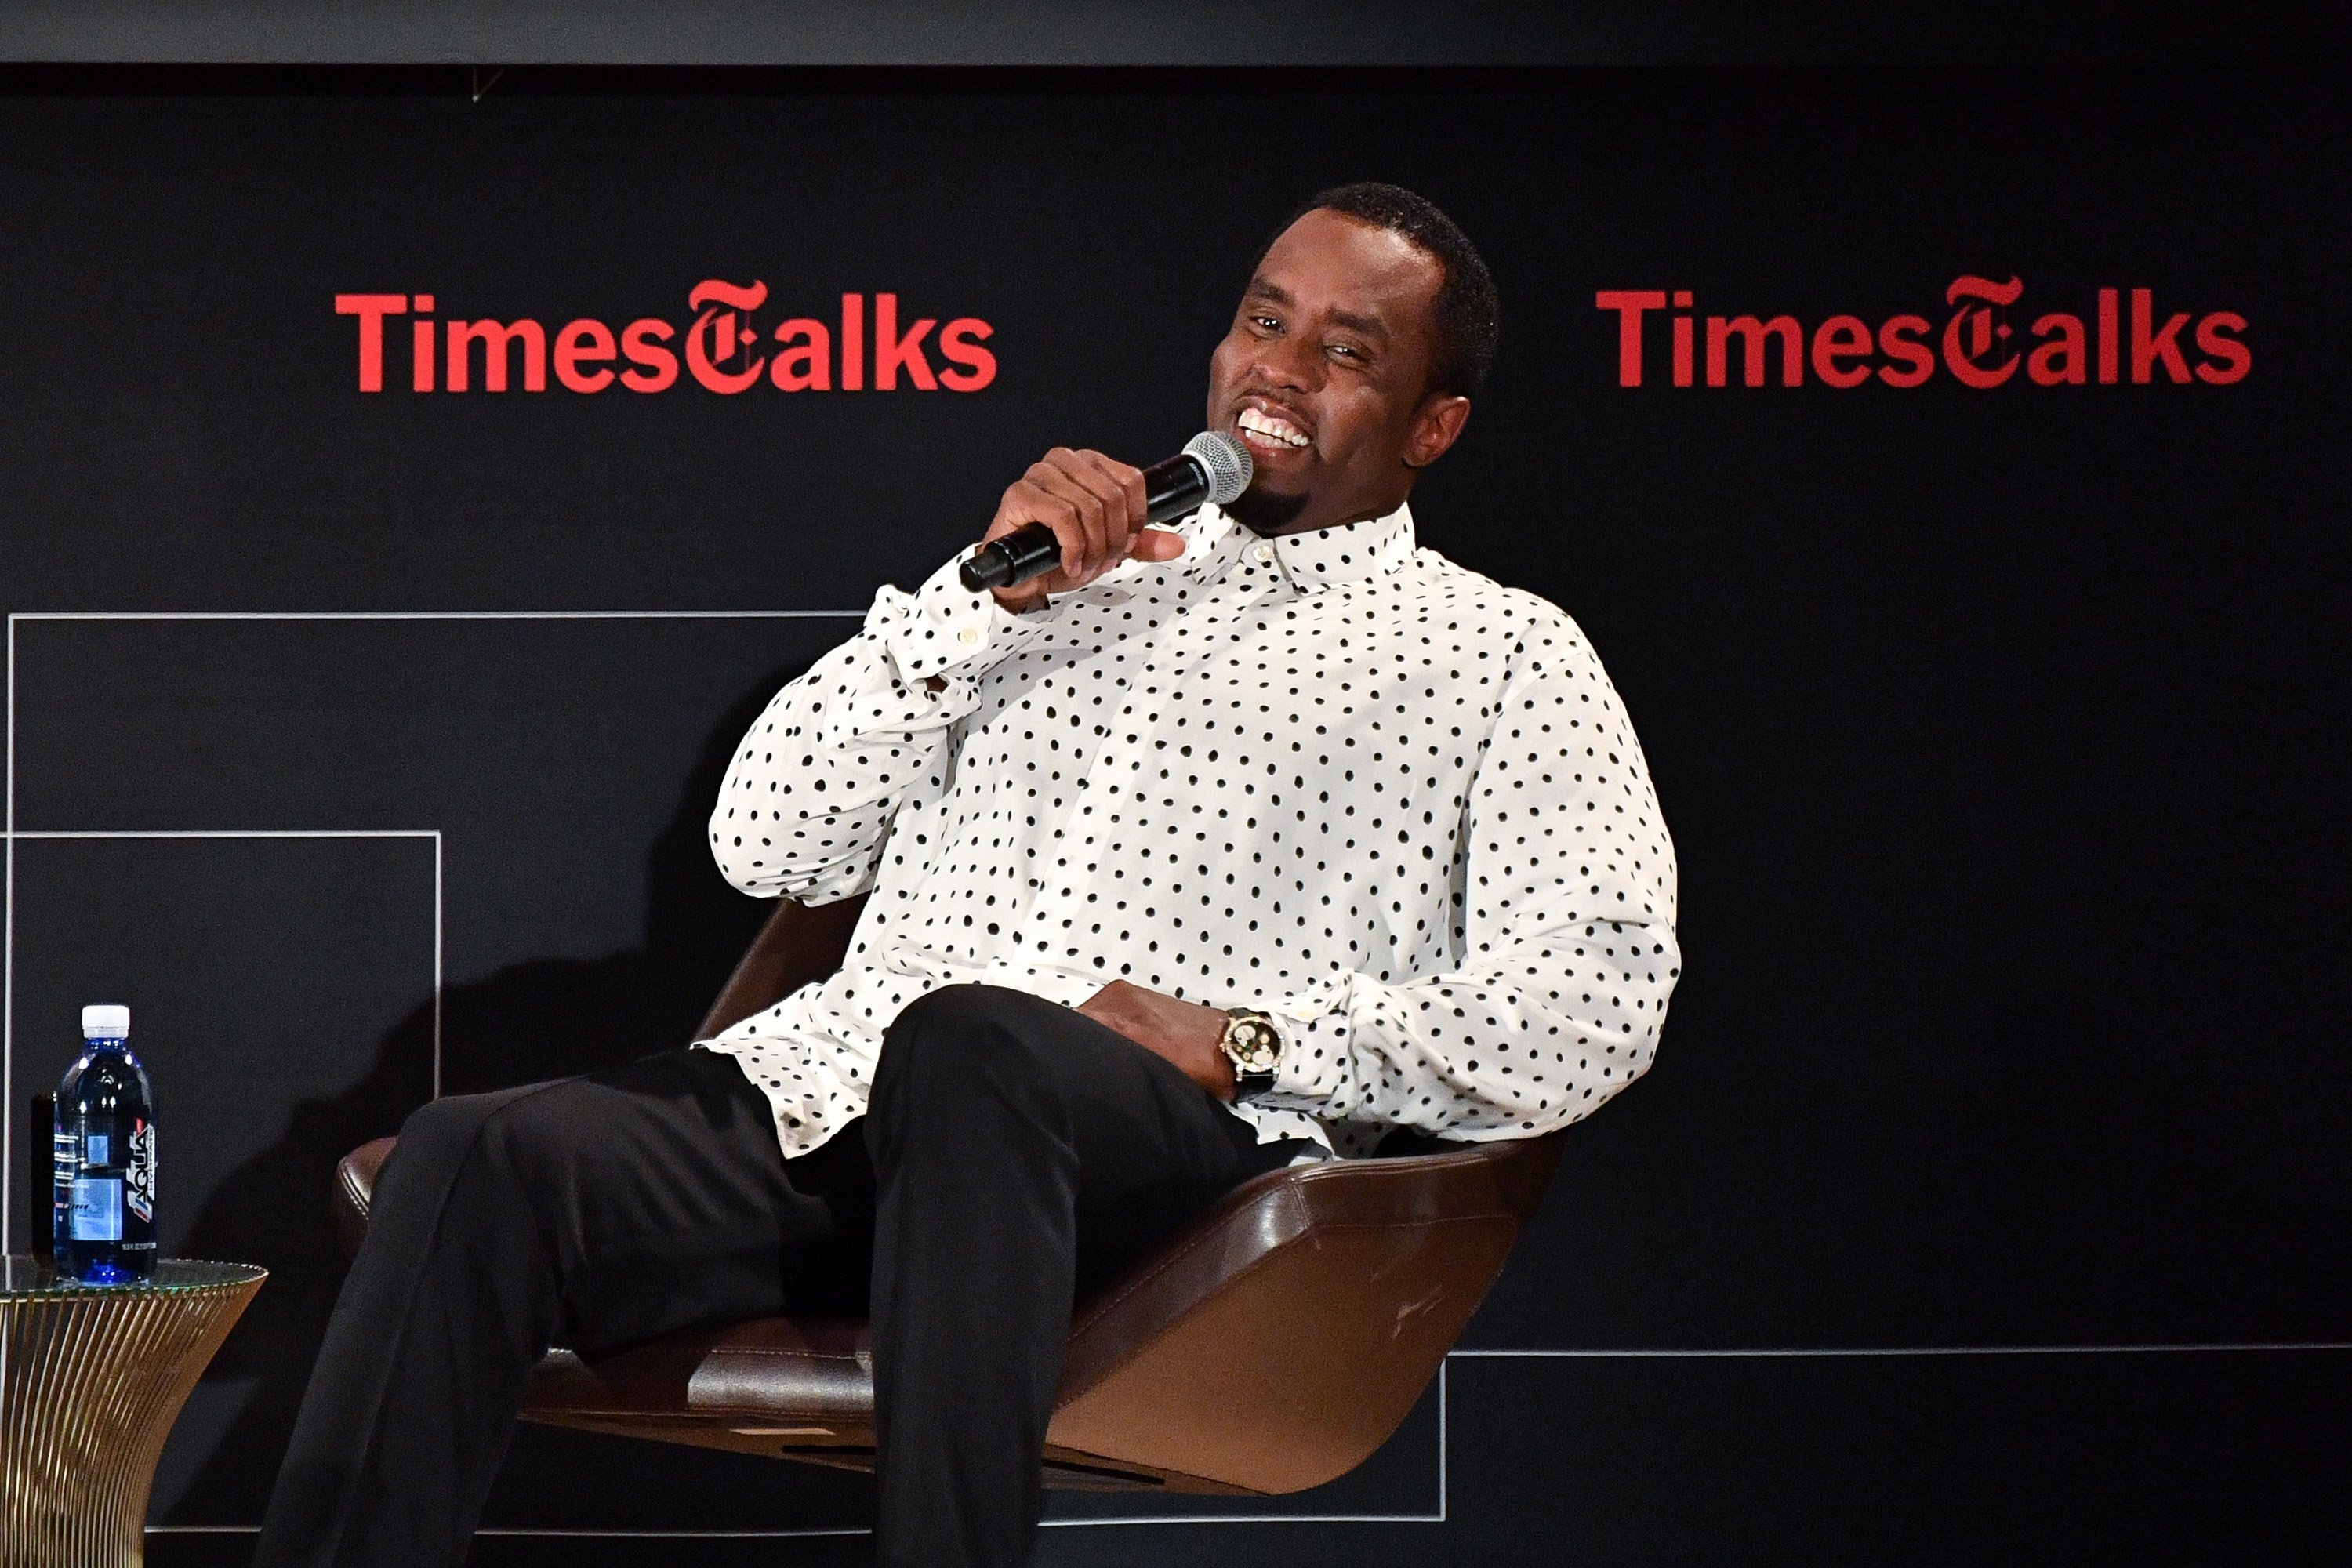 """Sean """"Diddy"""" Combs at TimesTalks Presents: An Evening with Sean """"Diddy"""" Combs on Sept. 20, 2017 in New York City 